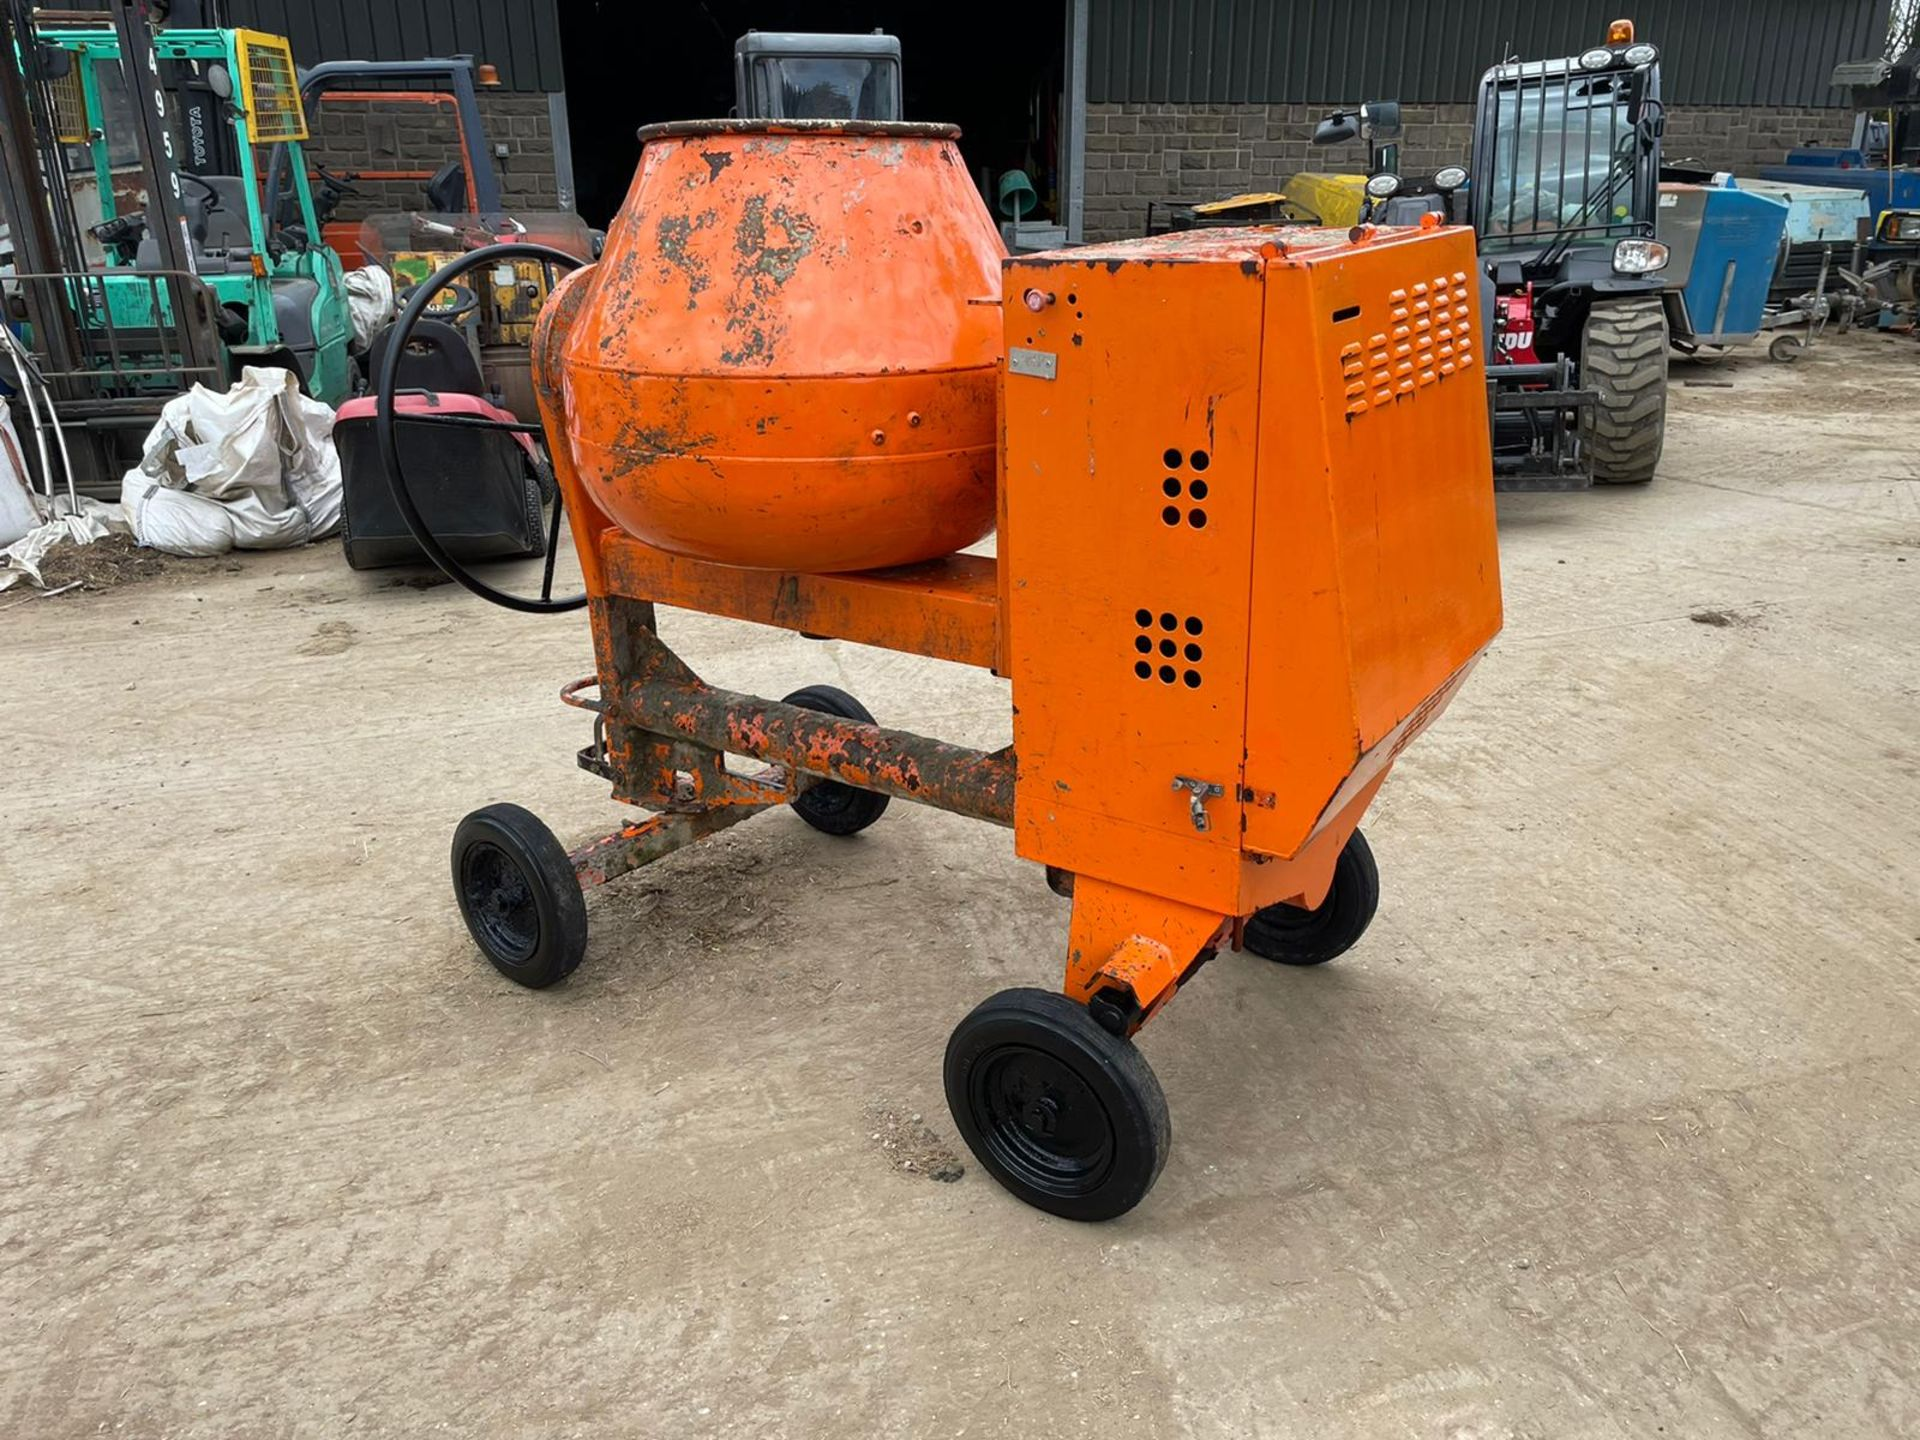 BELLE PREMIER 100XT CONCRETE MIXER, YANMAR DIESEL ENGINE, GOOD COMPRESSION *NO VAT* - Image 3 of 5